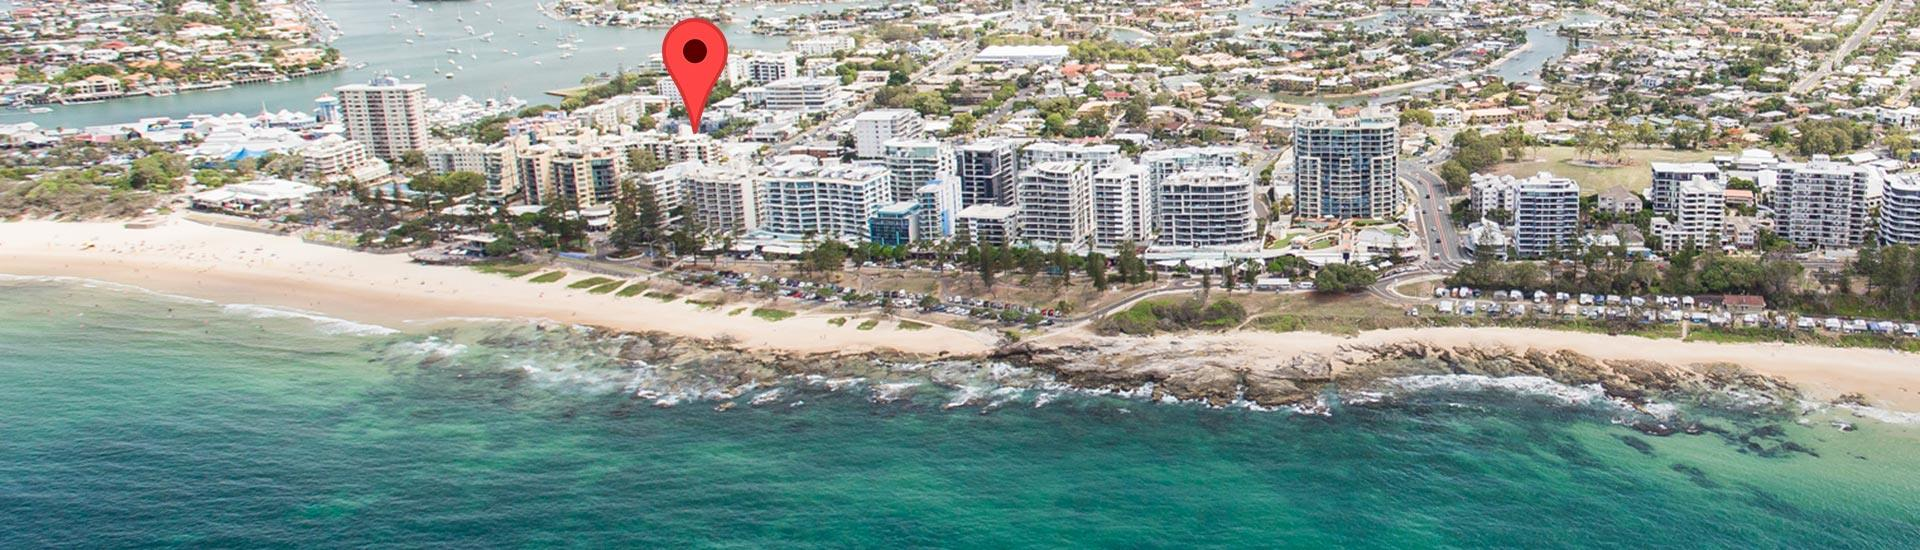 Caribbean Resort Mooloolaba Location